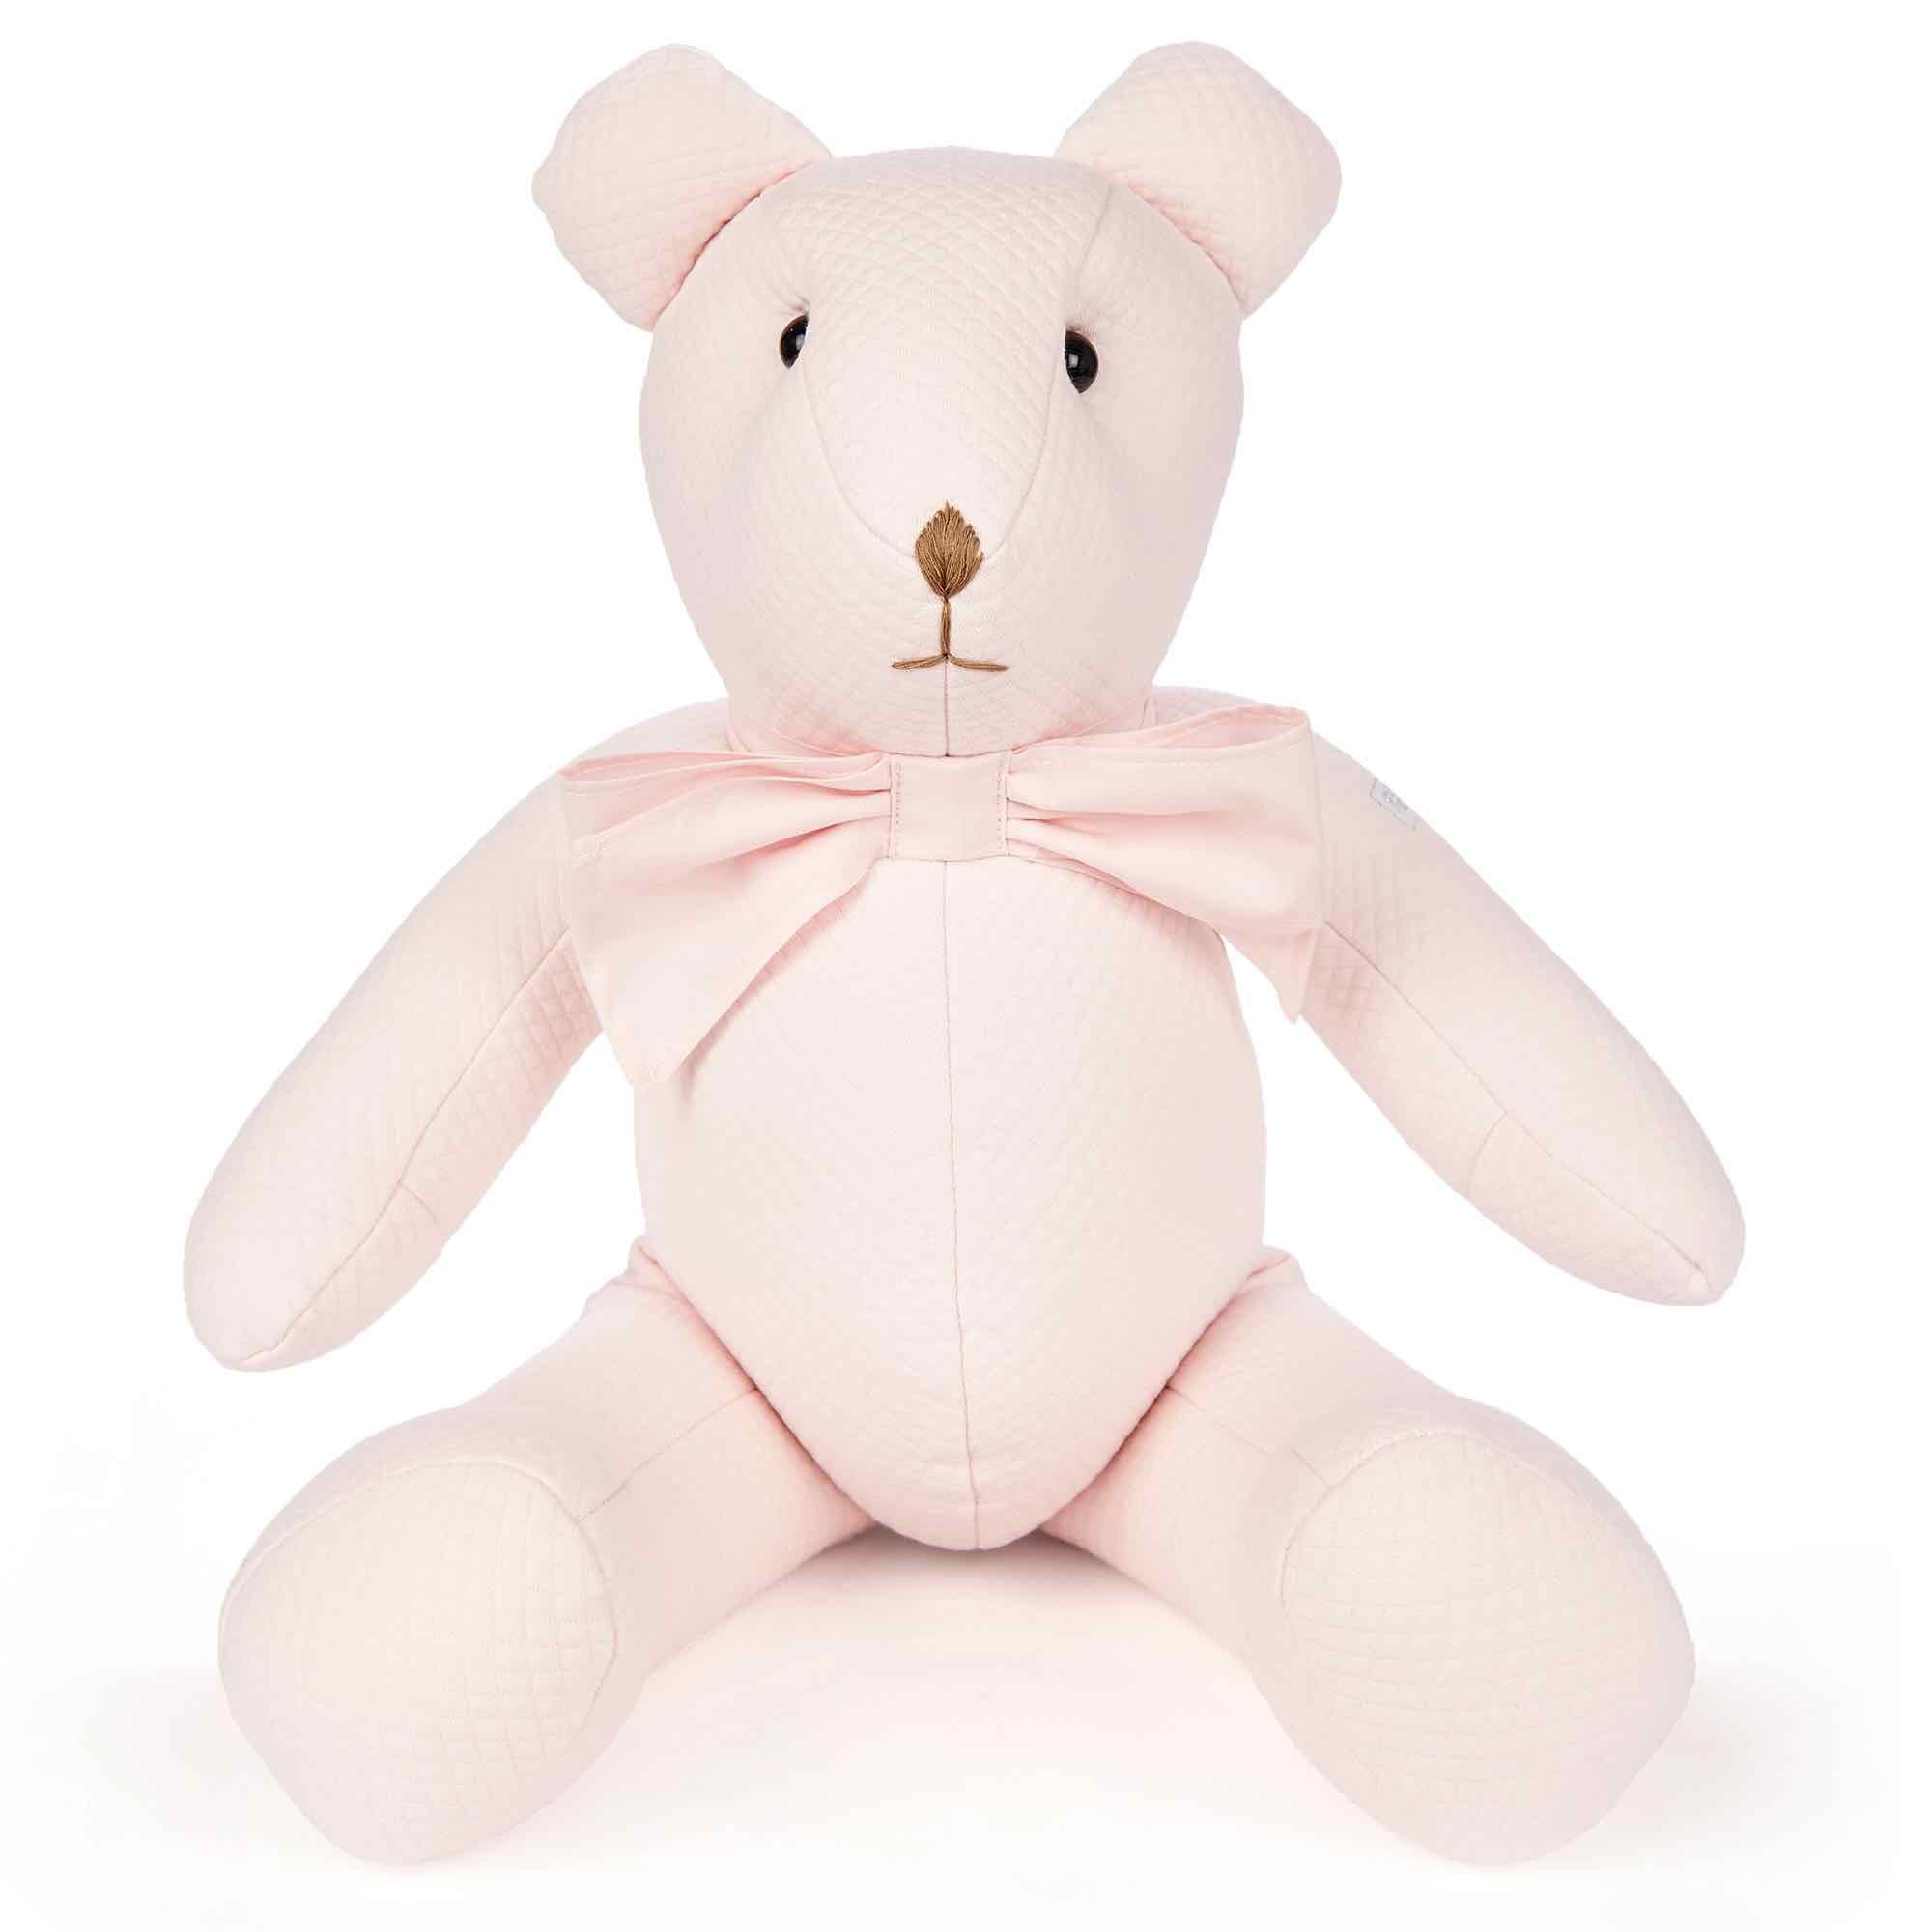 Theophile & Patachou Teddy Design - Royal Pink